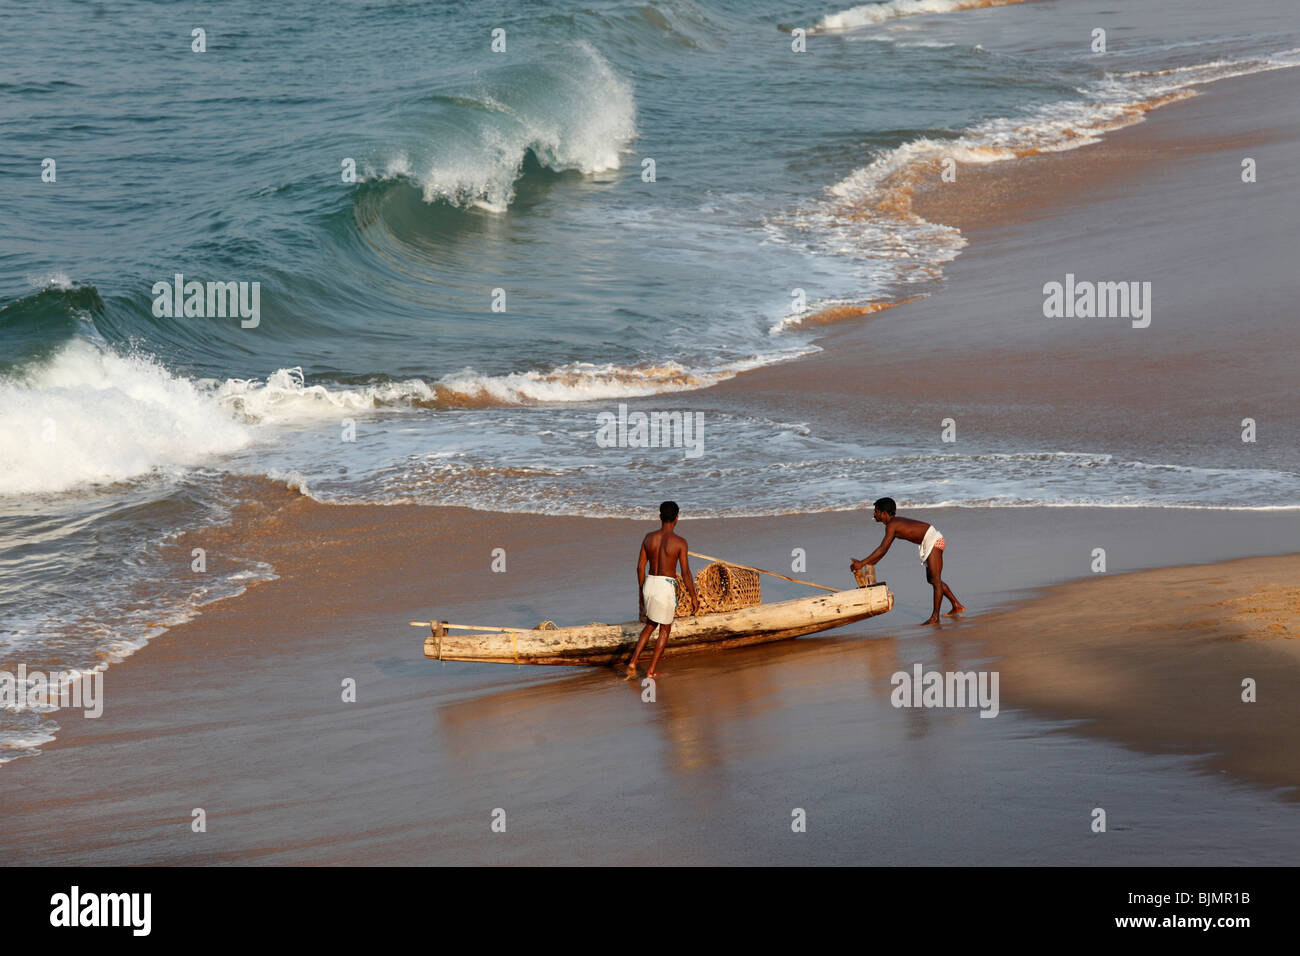 Two locals with a simple fishing boat on a beach south of Kovalam, Malabar Coast, Malabar, Kerala, southern India, - Stock Image